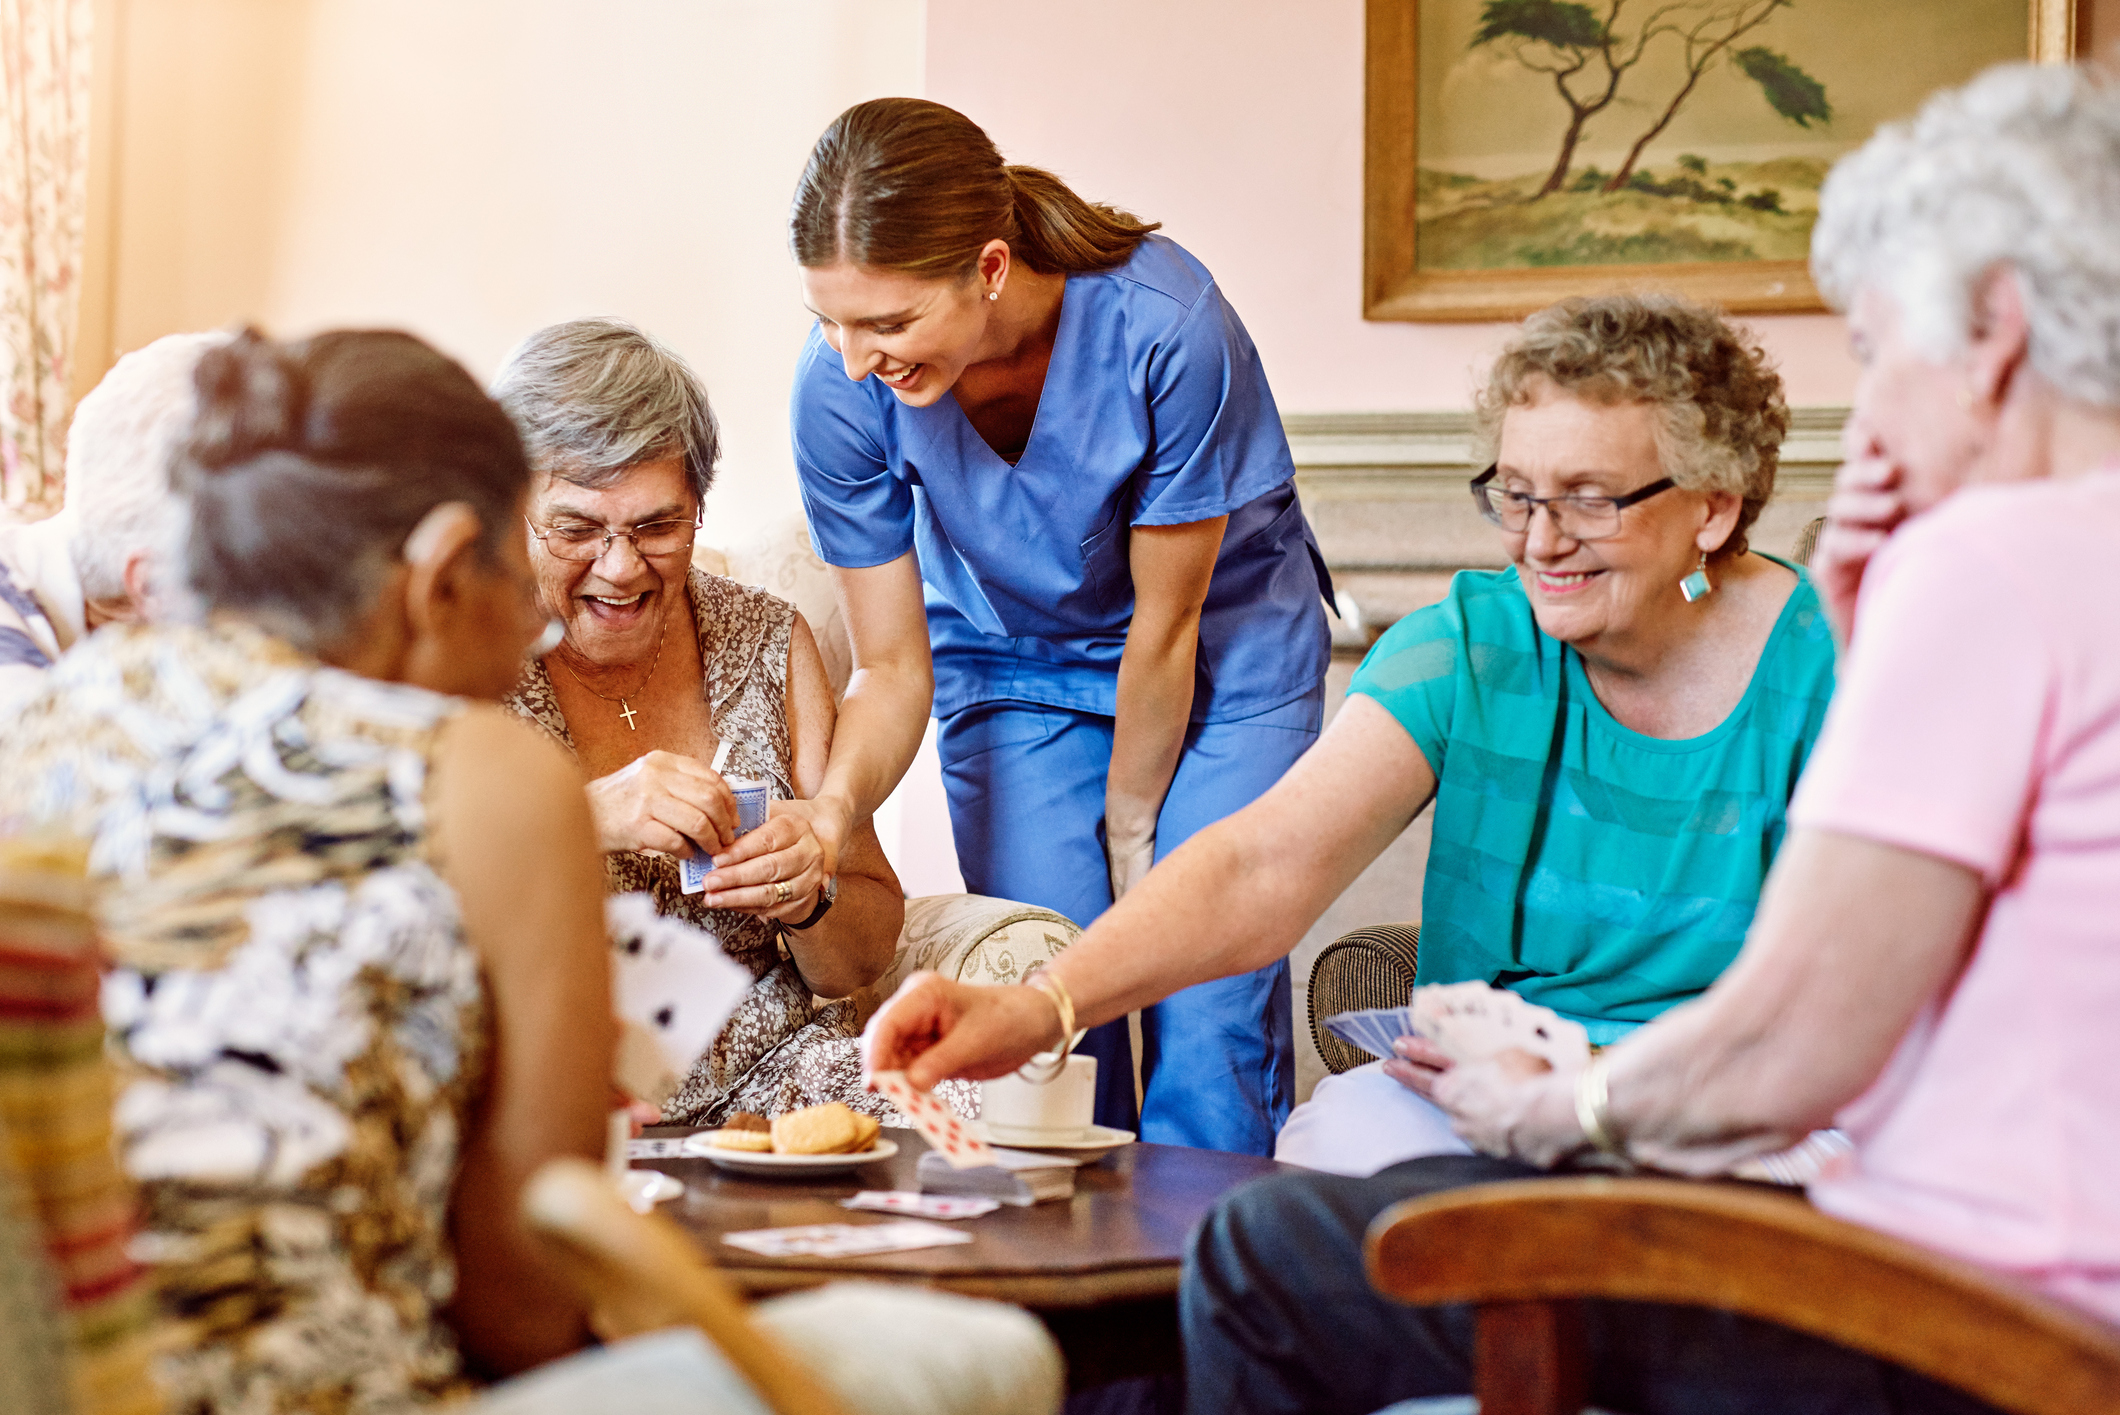 Benefits of Workers Compensation Insurance for Residential Care Facilities